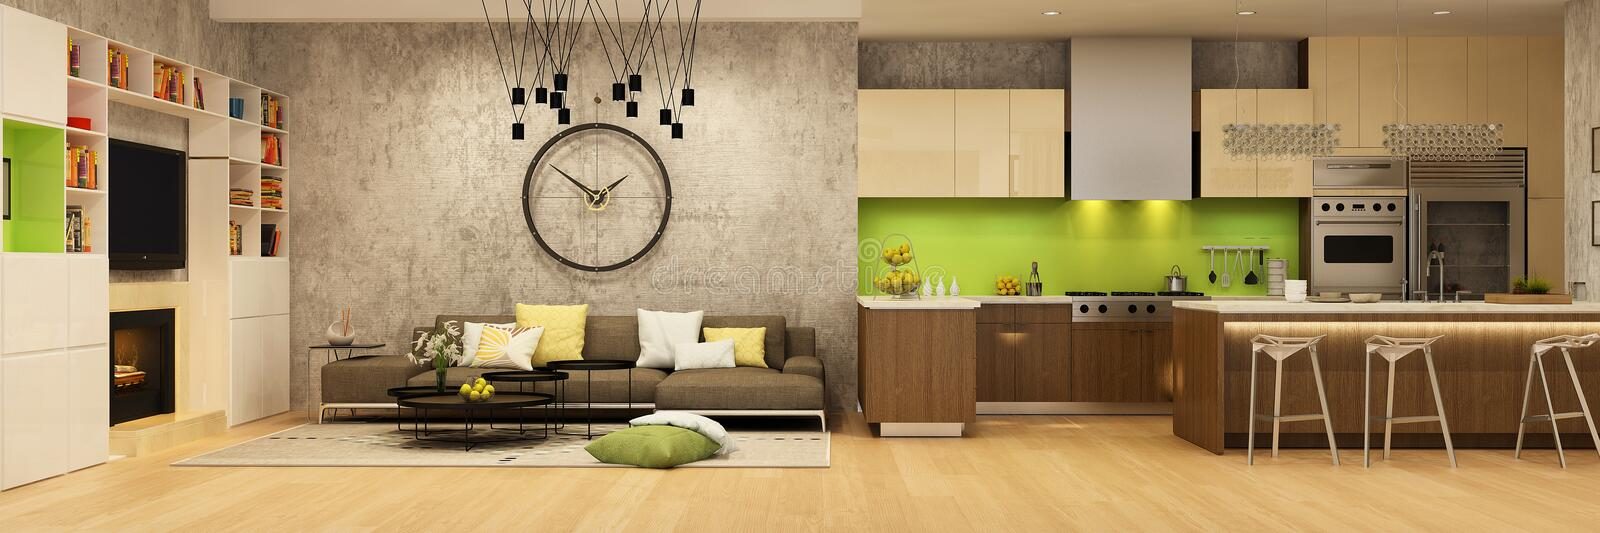 Modern house interior of living room and a kitchen in beige and green colors. Modern house interior of living room and a kitchen in beige and green colors in stock photography